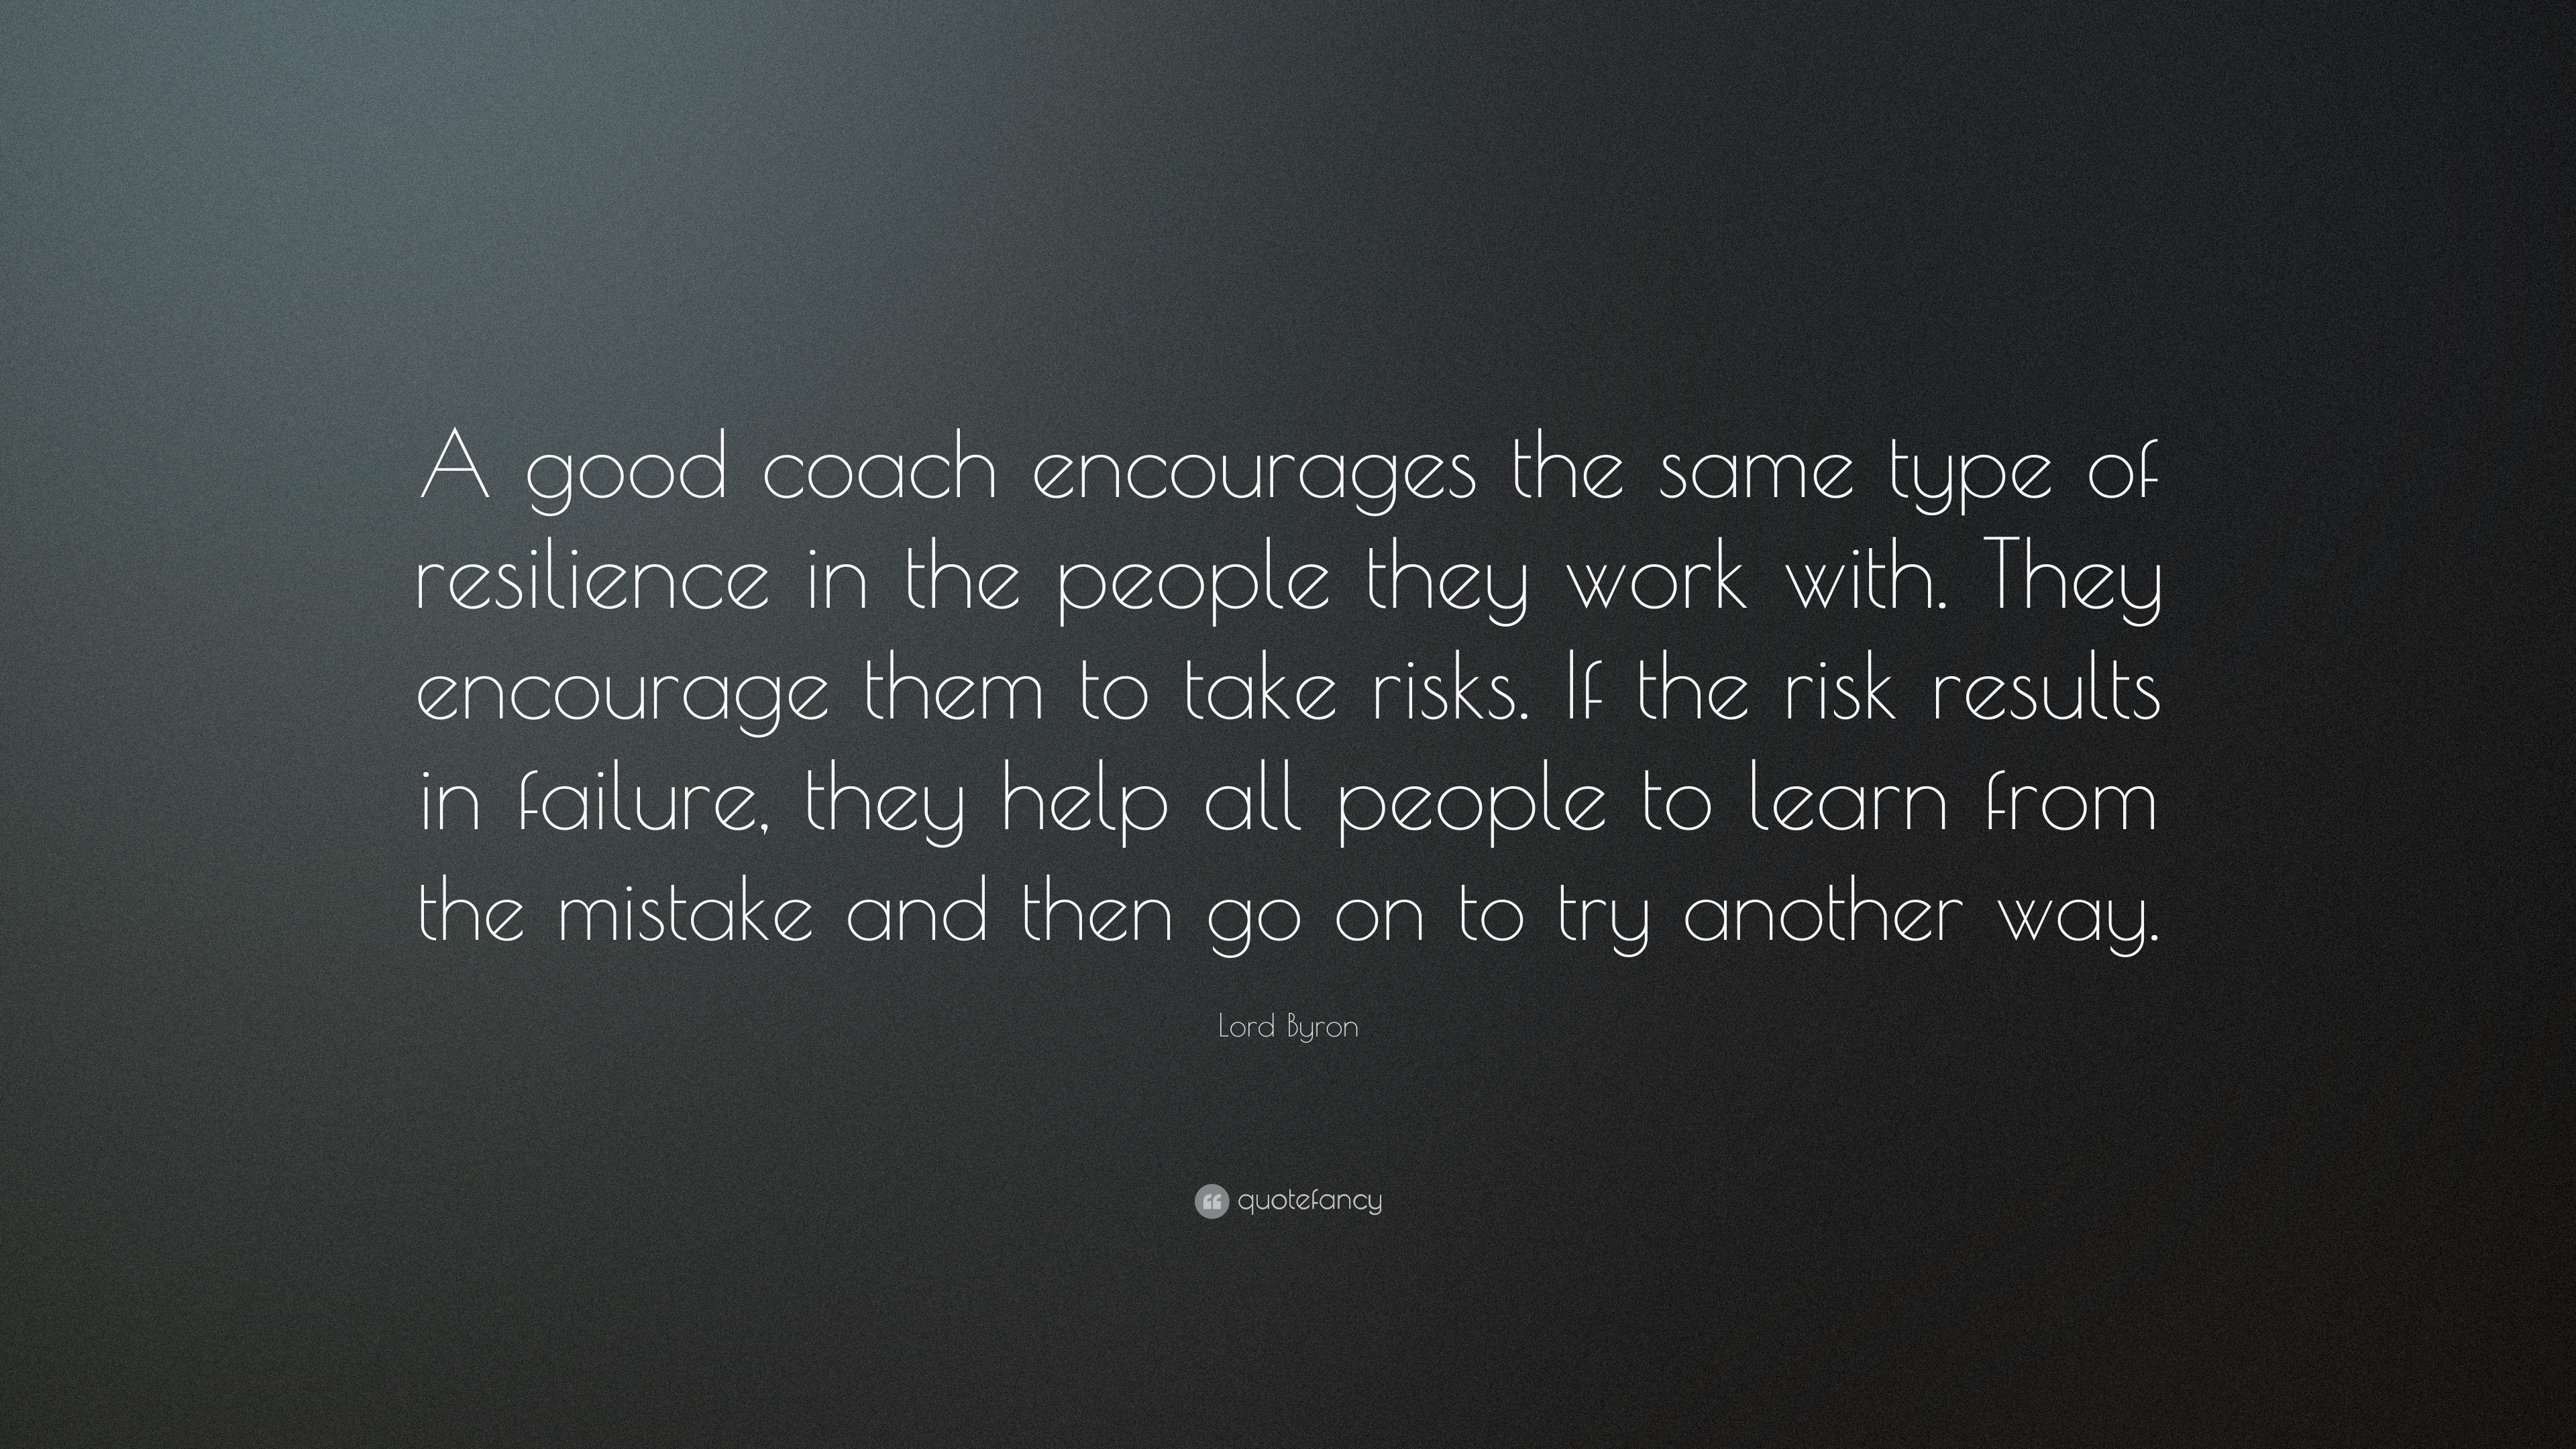 Wallpaper Motivational Quotes 42 Lord Byron Quote A Good Coach Encourages The Same Type